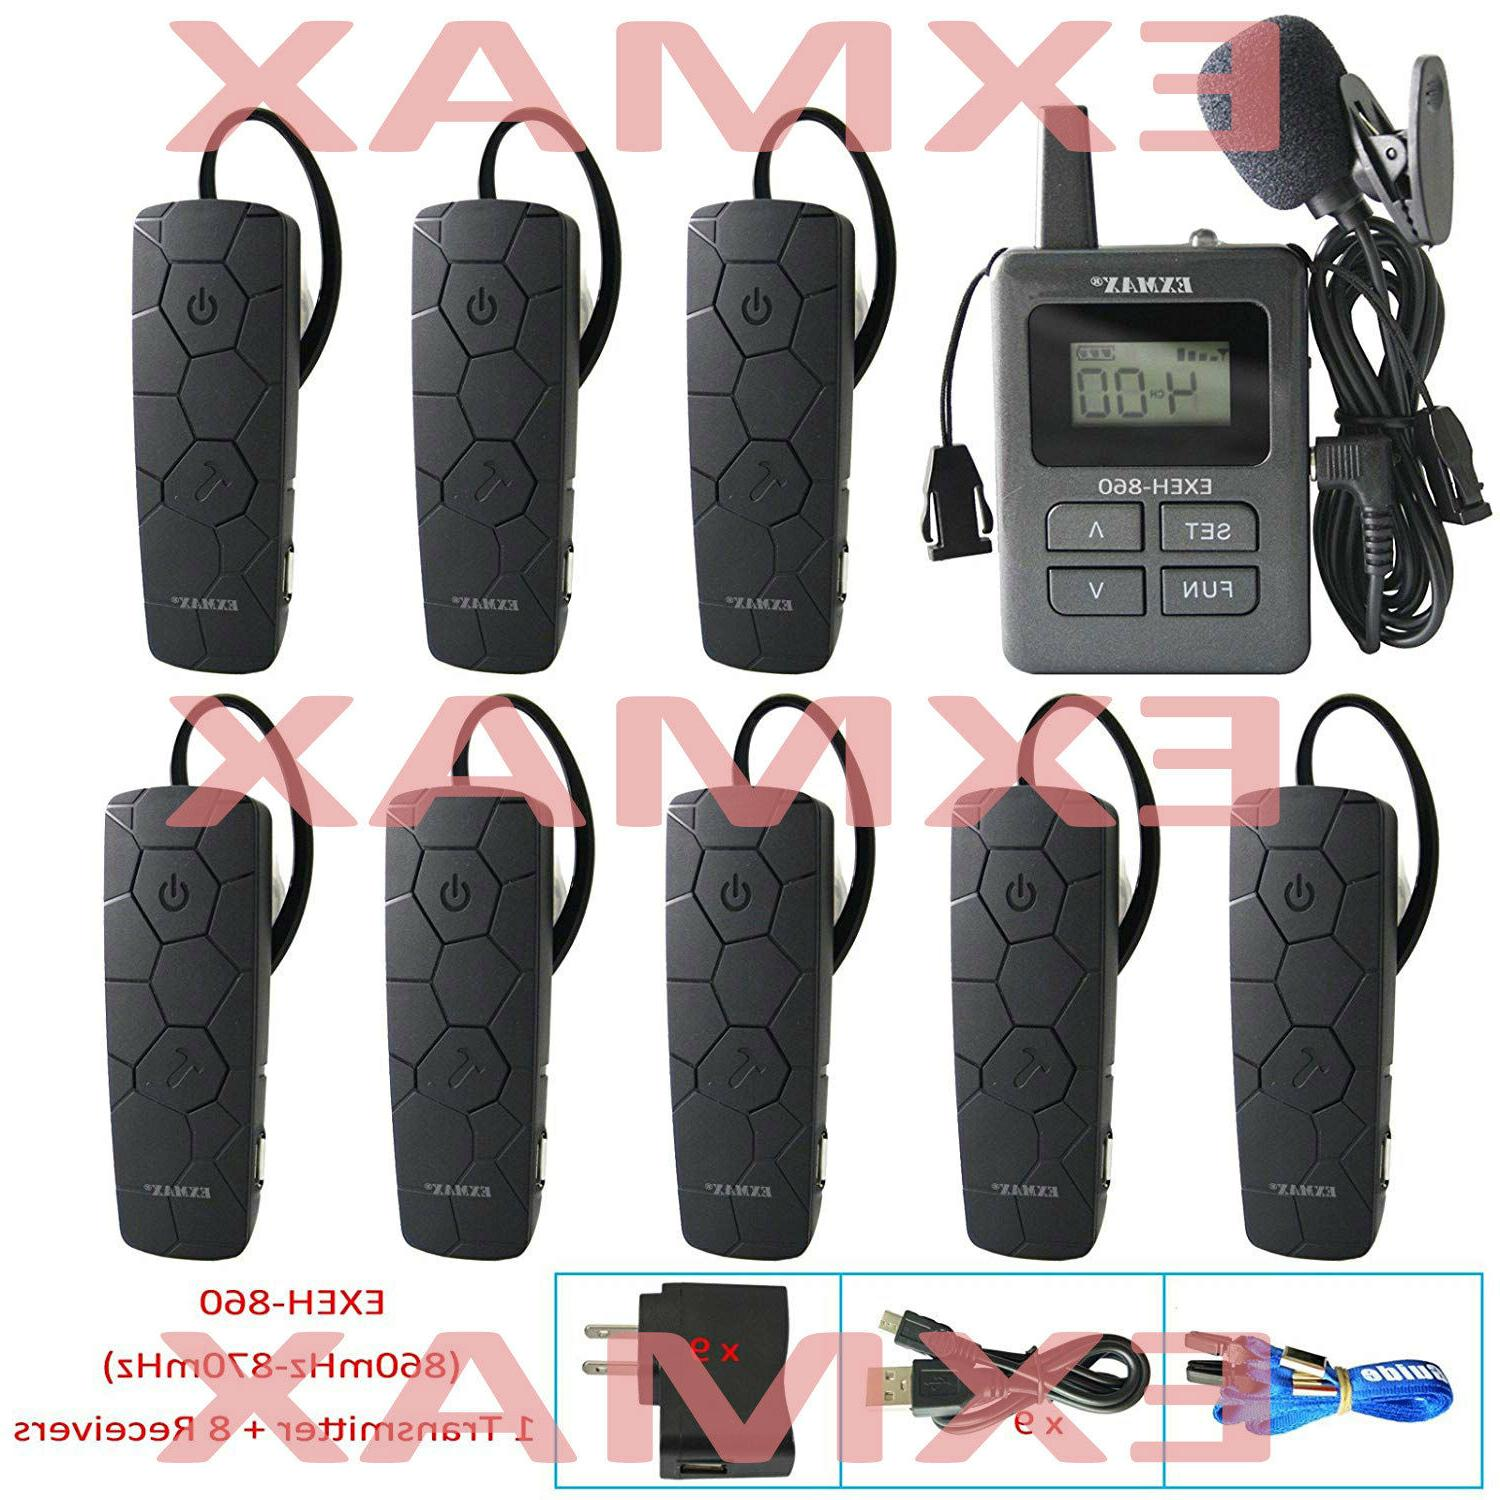 860 870mhz wireless whisper tour guide system